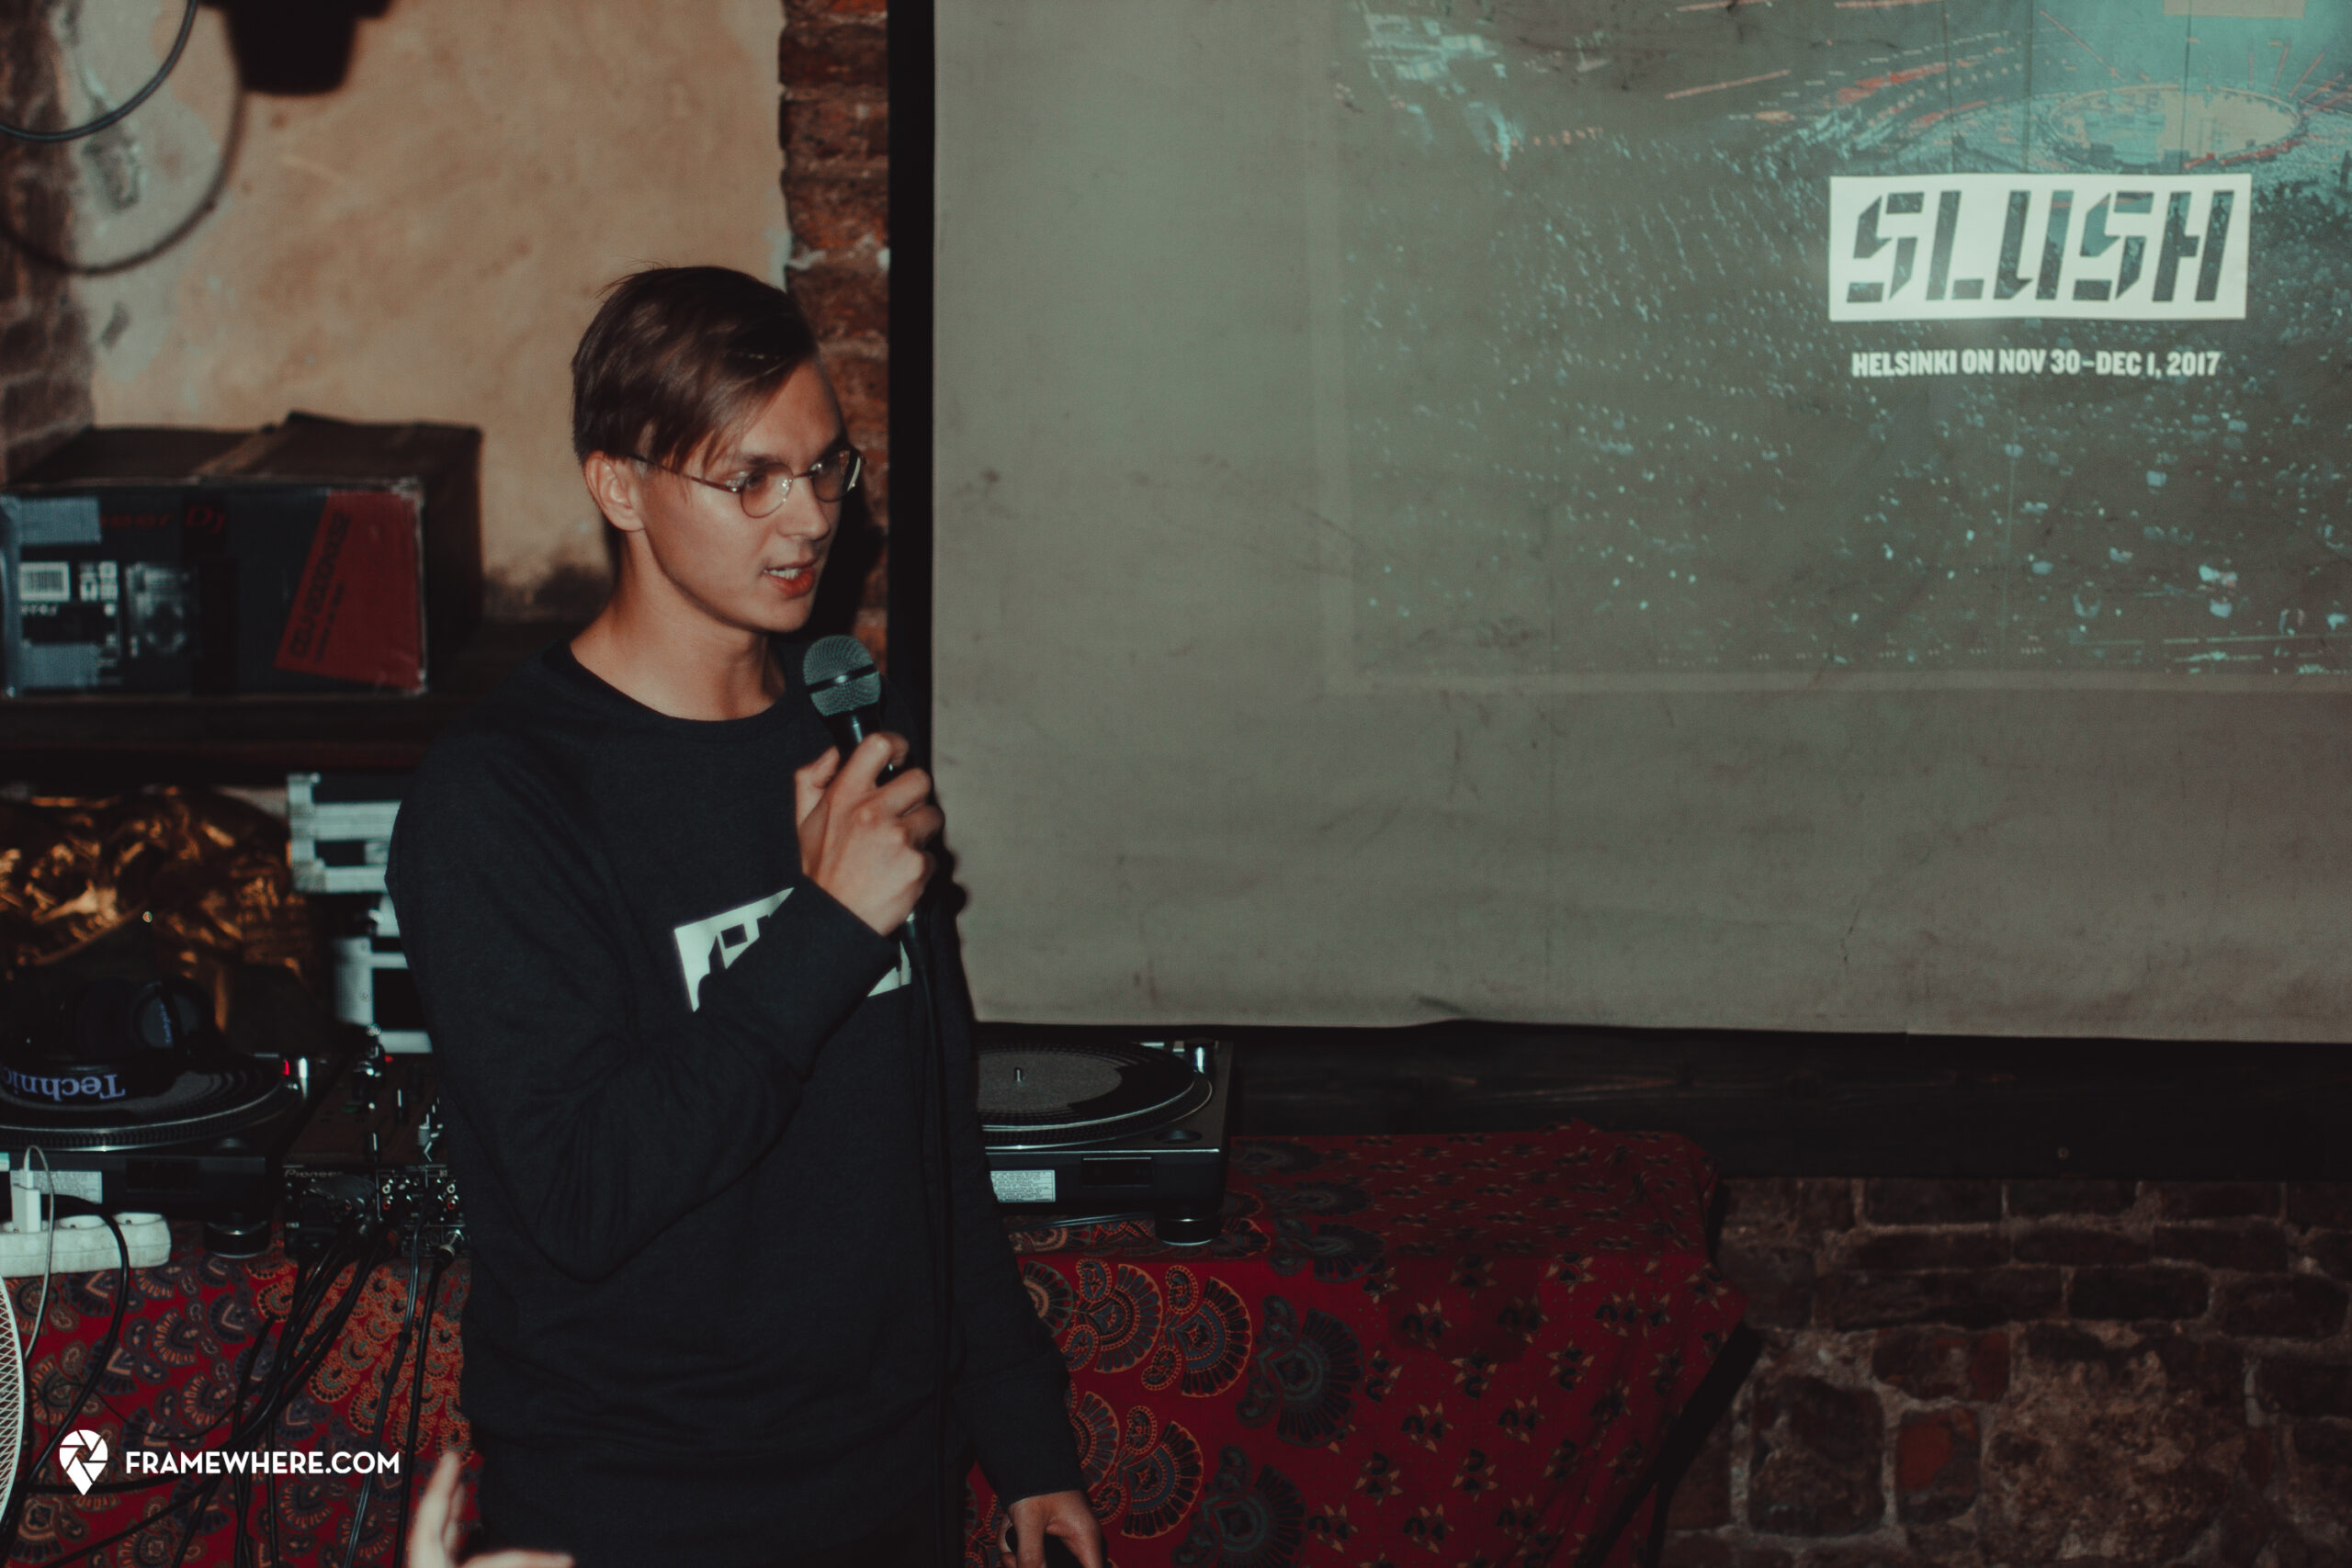 , Photos Or It Didn't Happen: #OMGKRK Partners With Framewhere To Capture Krakow Startup Community